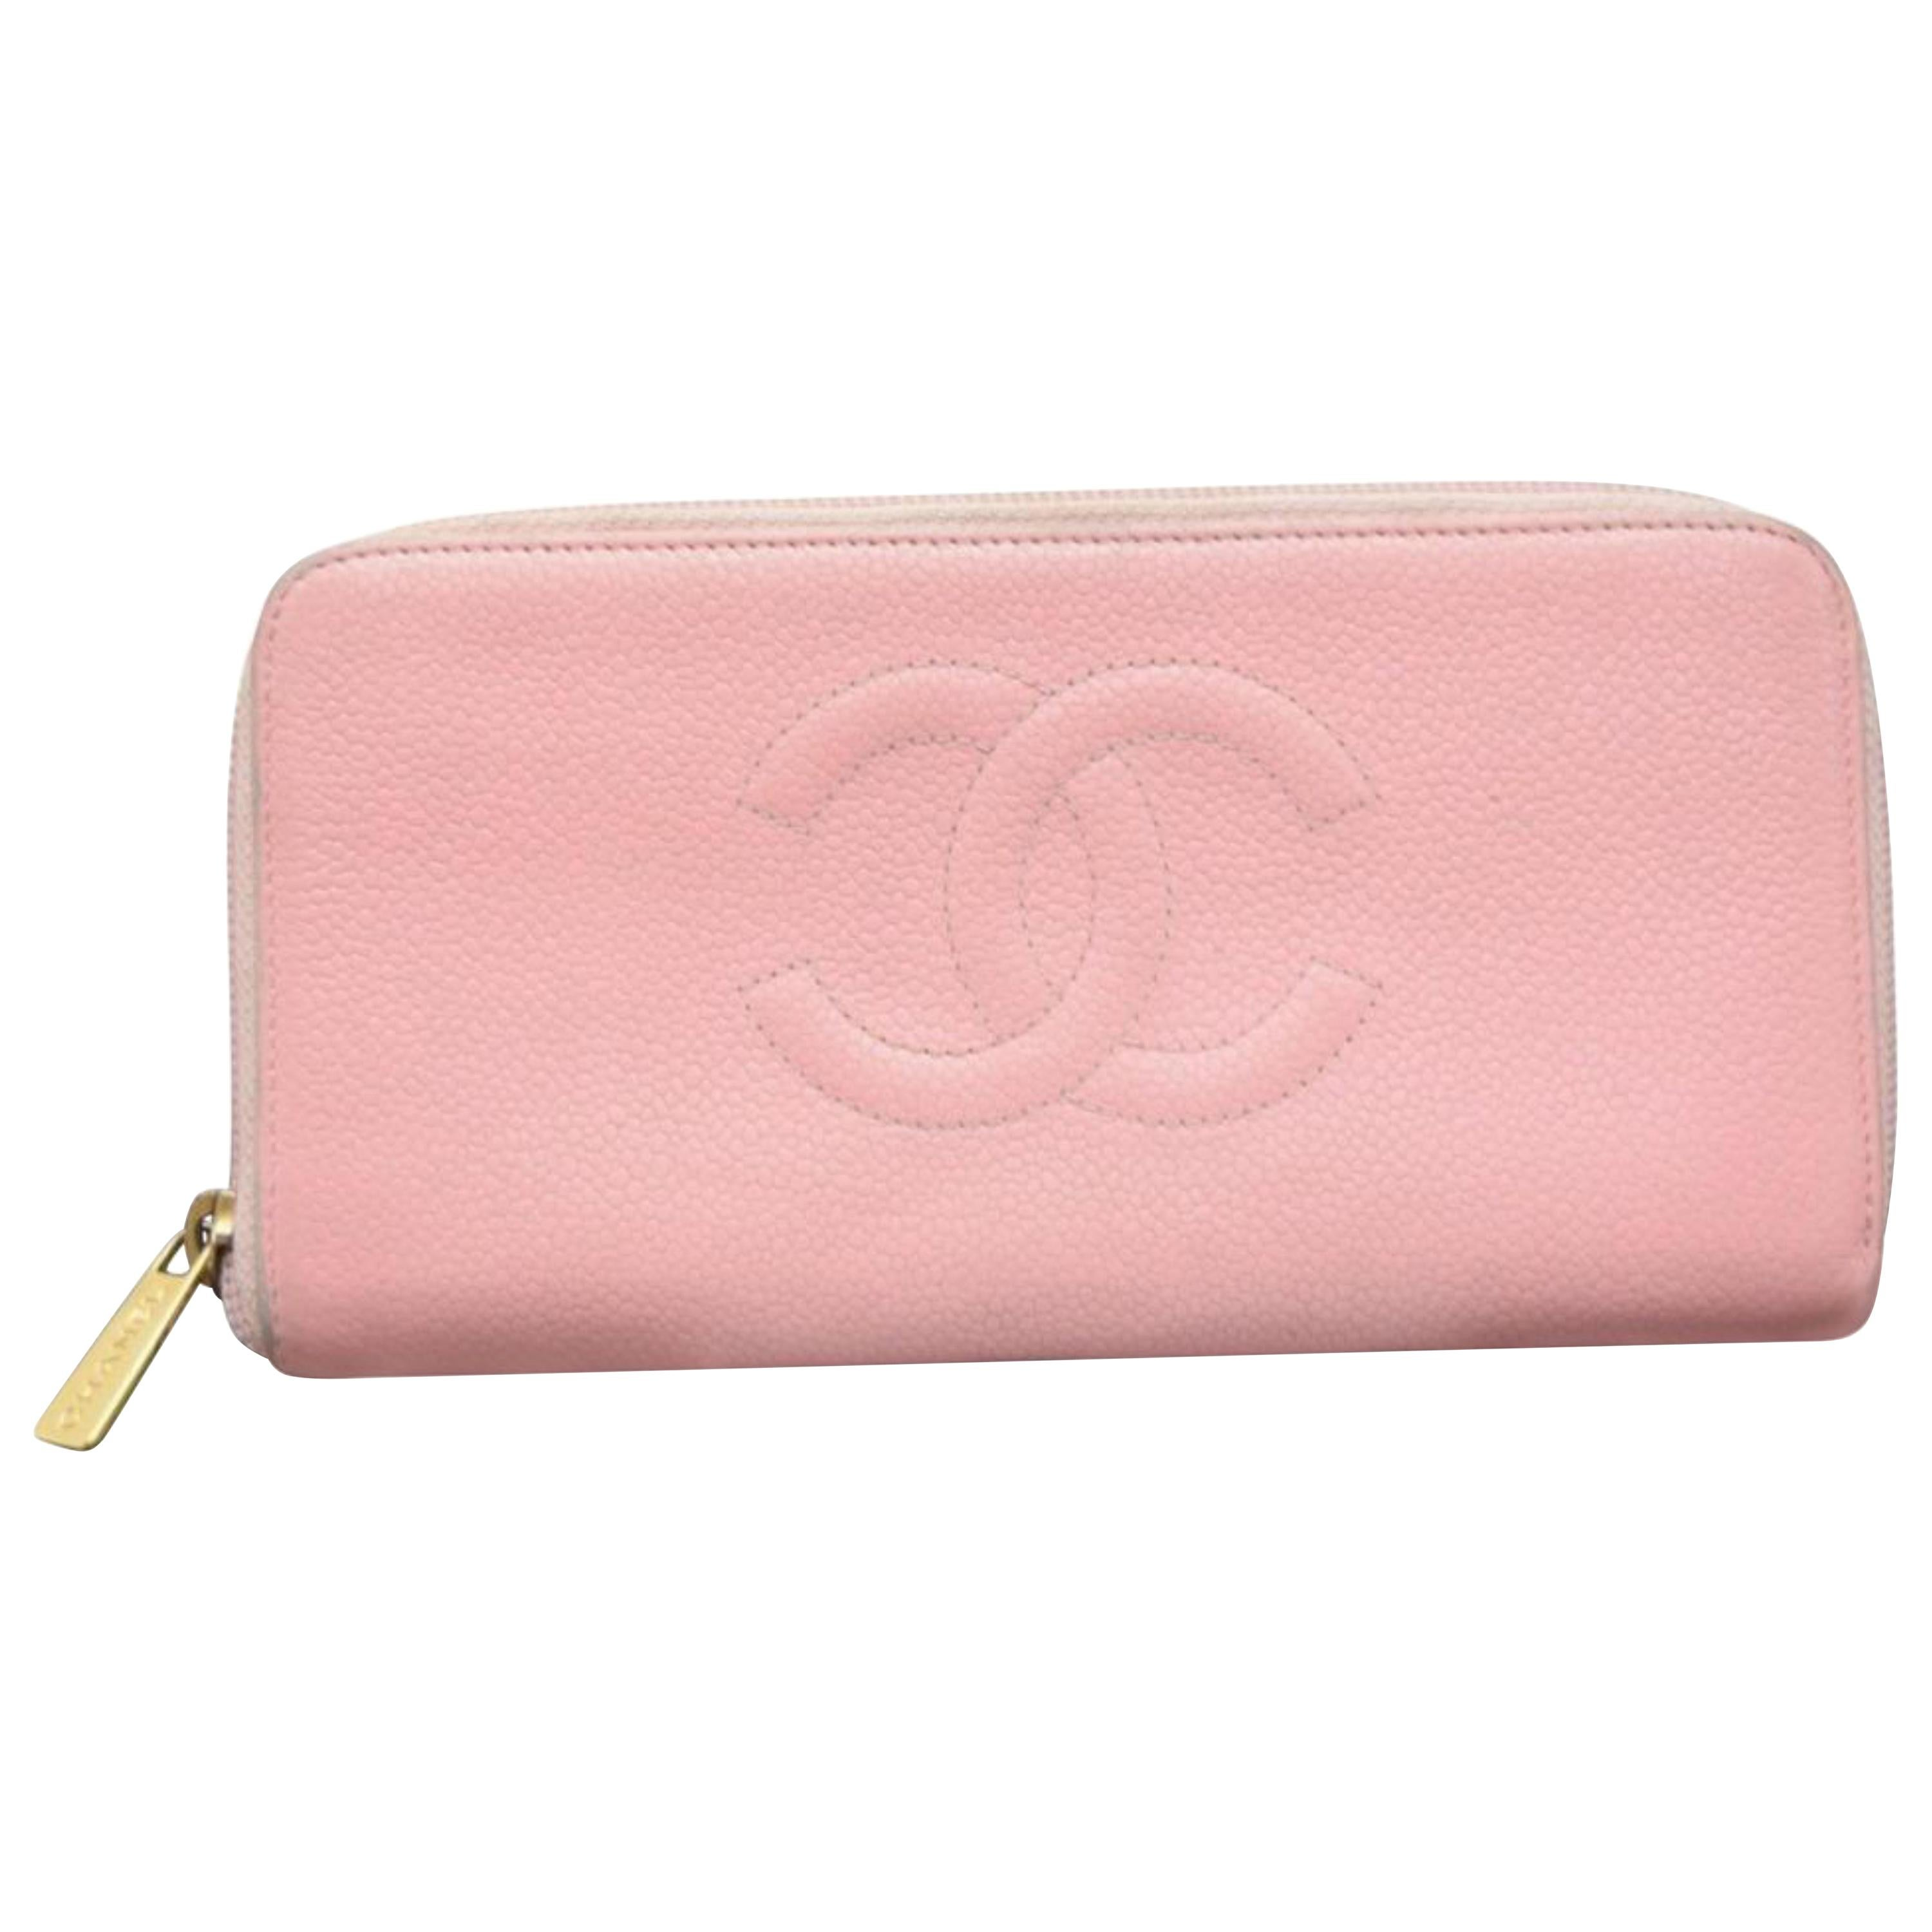 4e85c5cdd09a Chanel Pink Caviar Leather CC Timeless Yen Wallet For Sale at 1stdibs